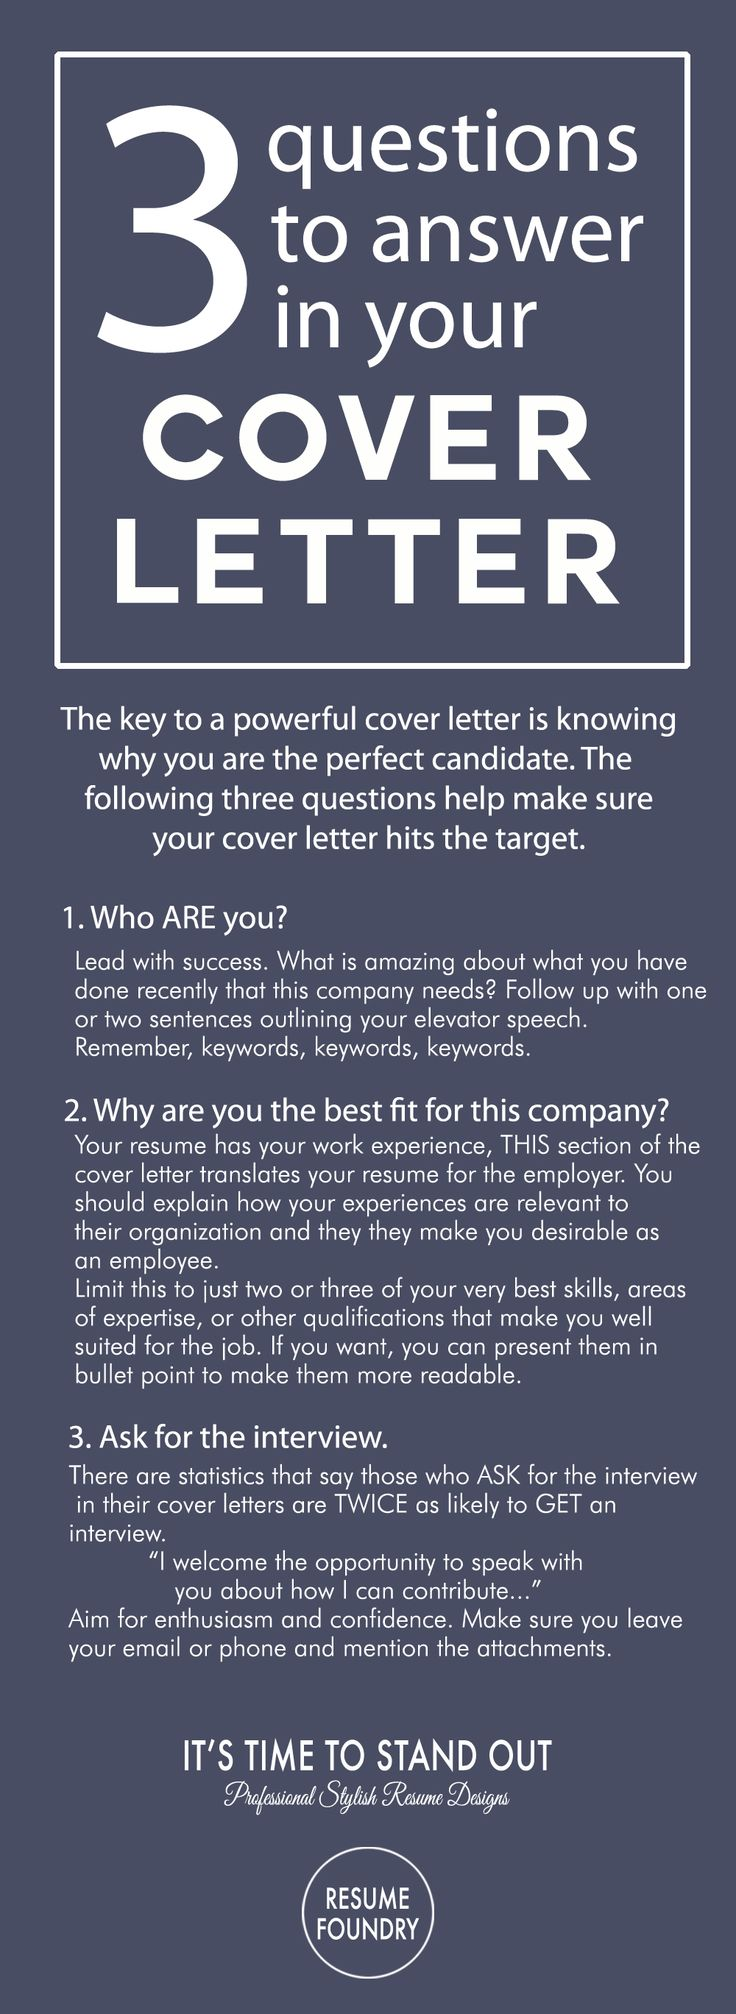 cover letter tips outline how to write a cover letter - How To Prepare A Resume Cover Letter